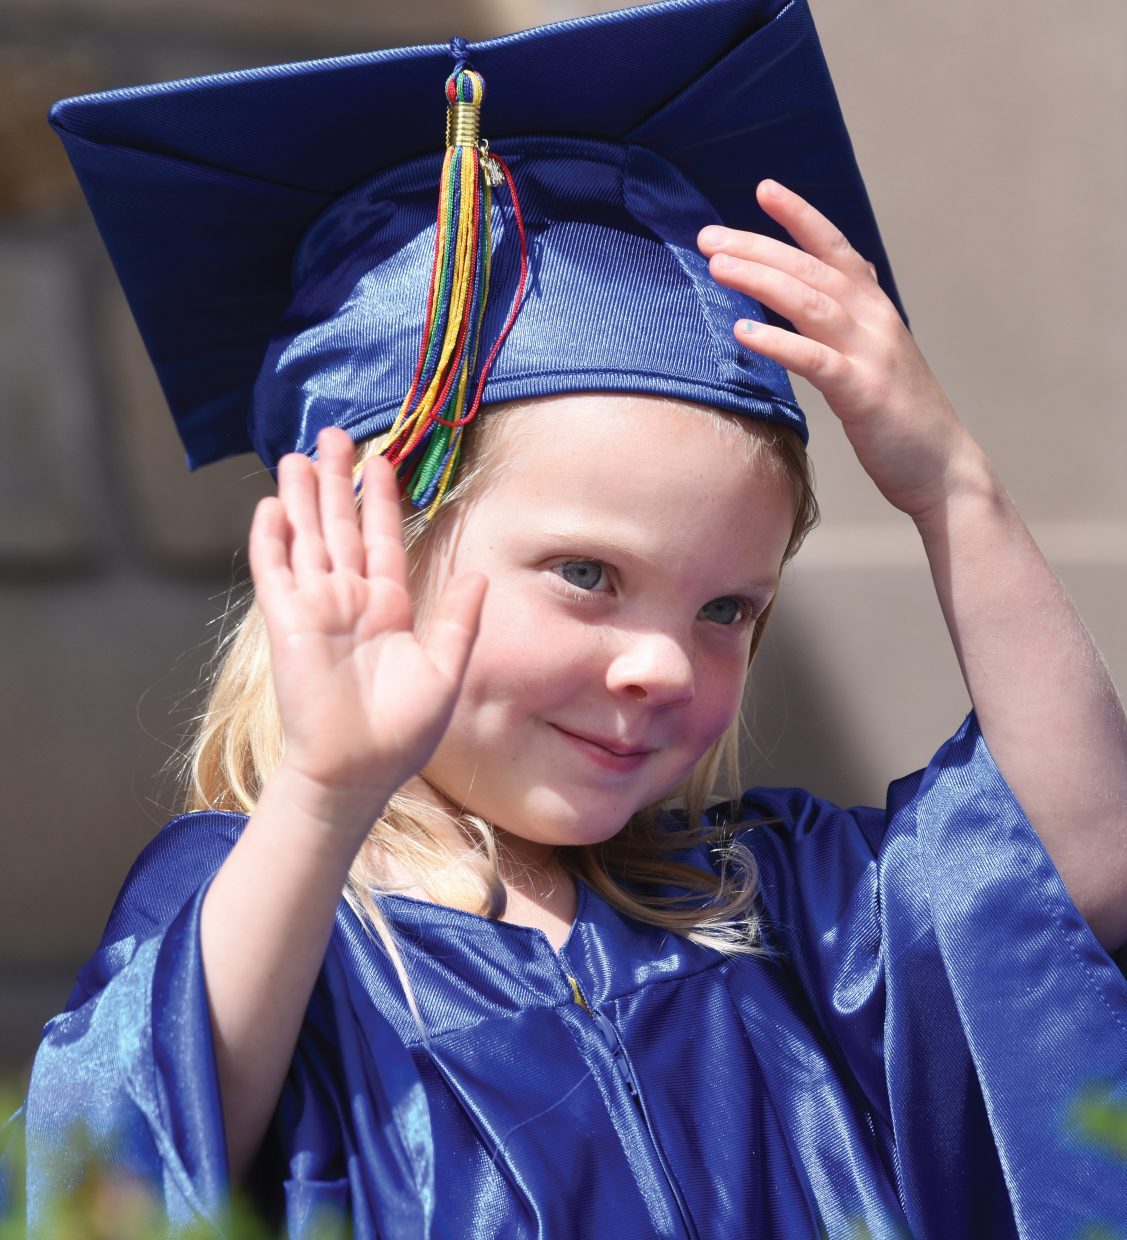 Holy Name Preschool student Kinsley Melland waves to her parents in the crowd during her graduation ceremony Thursday. Melland and her classmates will wave goodbye to preschool and head to kindergarten in the fall.